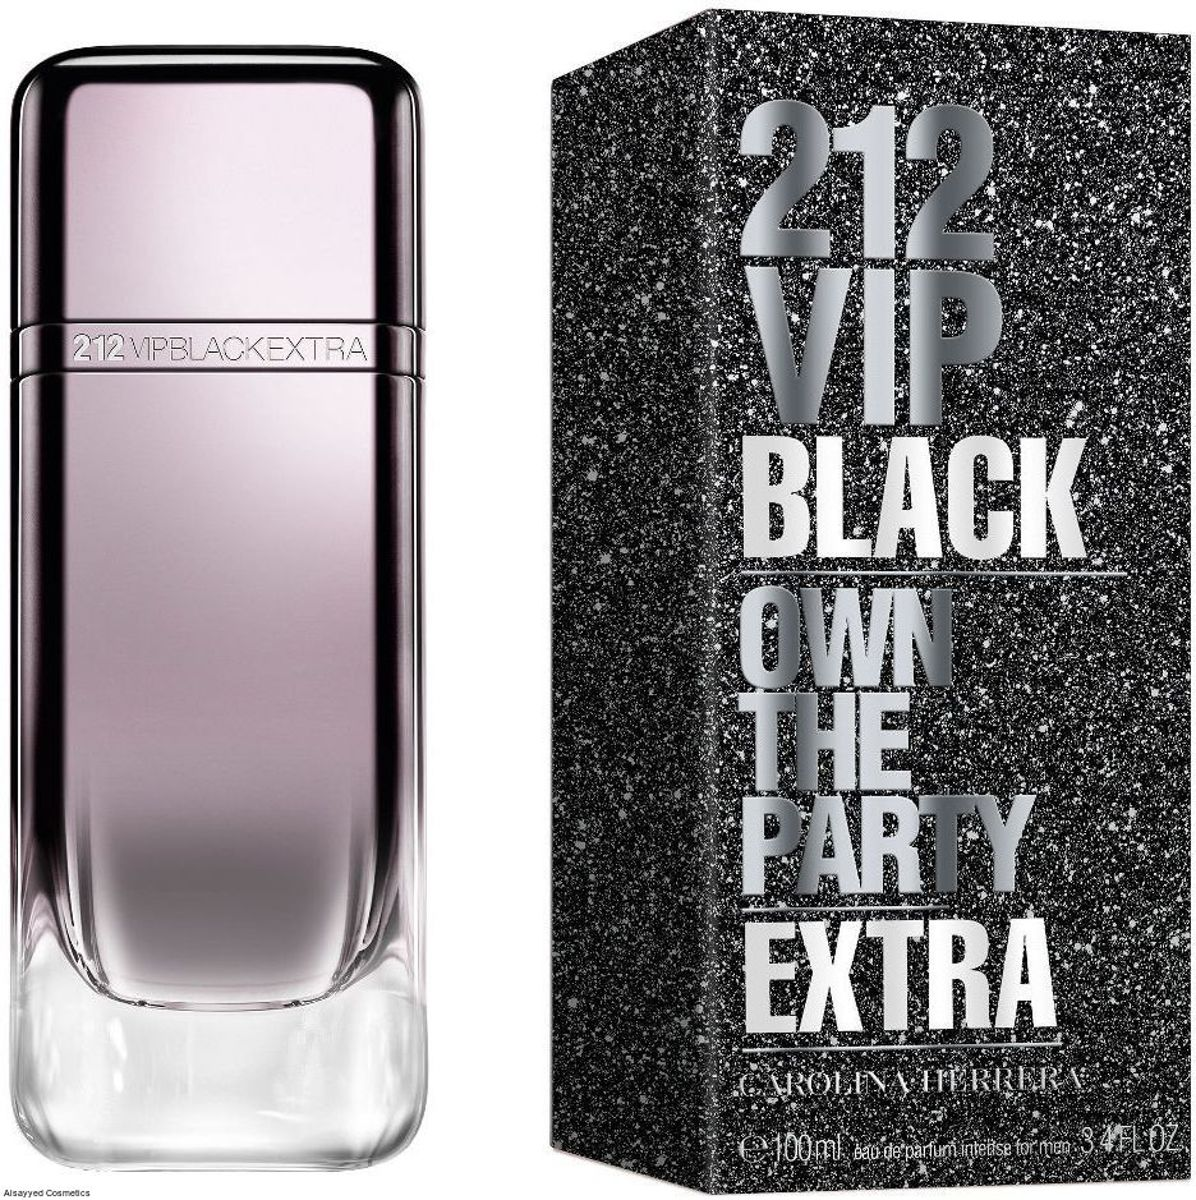 Carolina Herrera 212 VIP BLACK own the party extra edp spray 100 ml